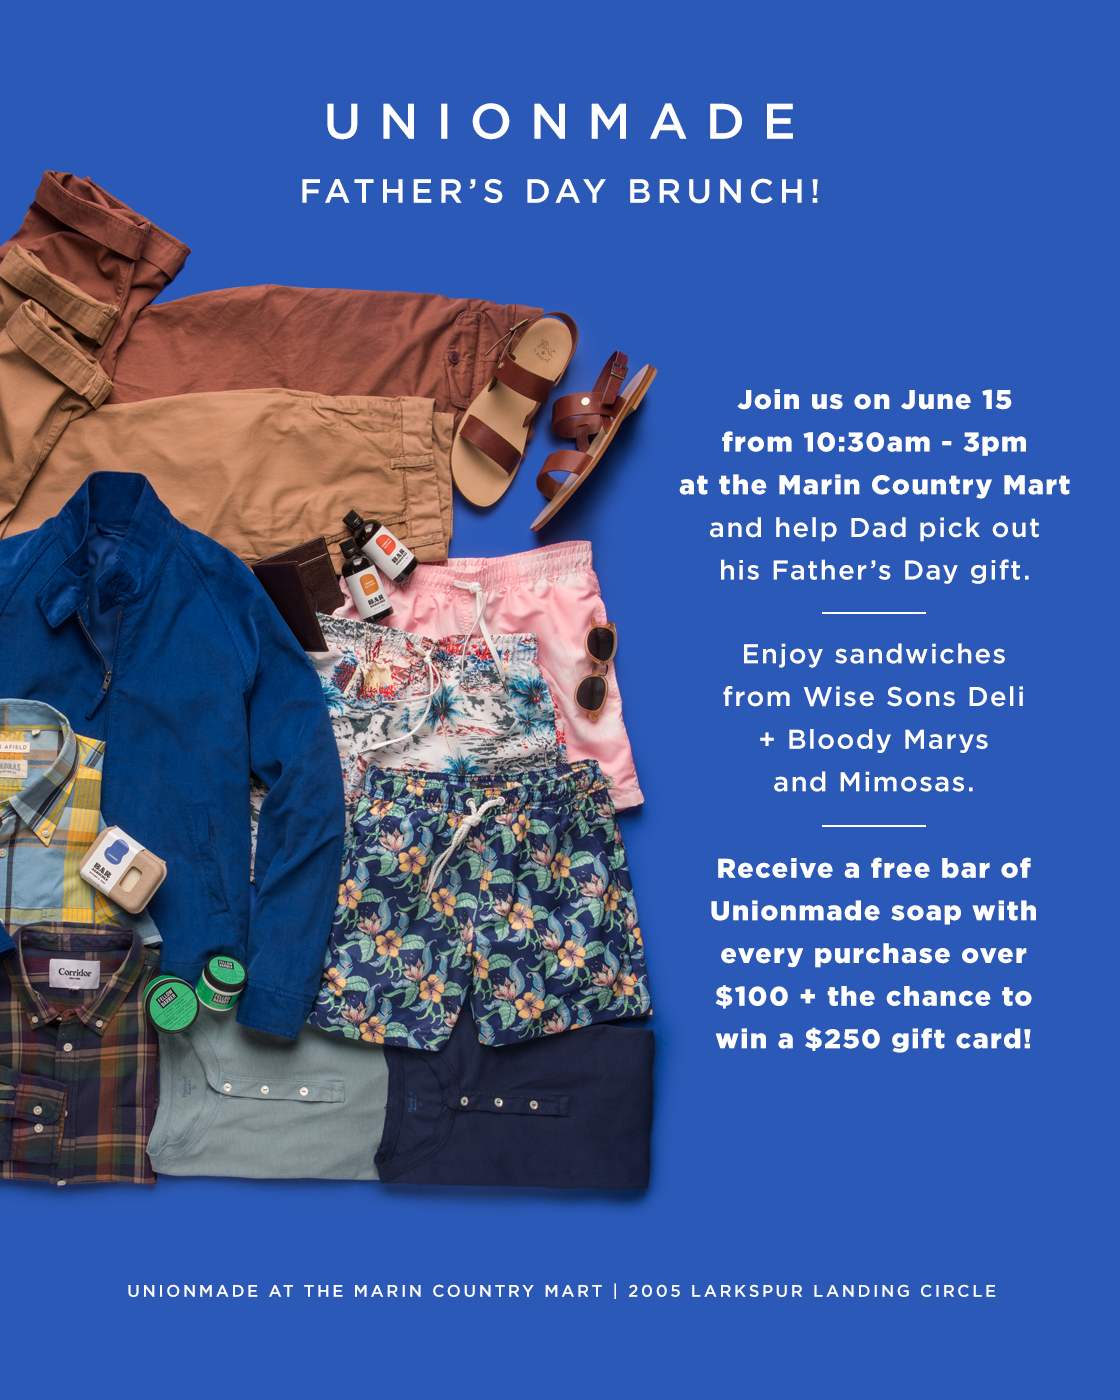 Union Made Father's Day Brunch - June 15, 10:30am-3pmEnjoy sandwiches from Wise Sons Deli + Bloody Marys and Mimosas while you find your Father's Day Gift.